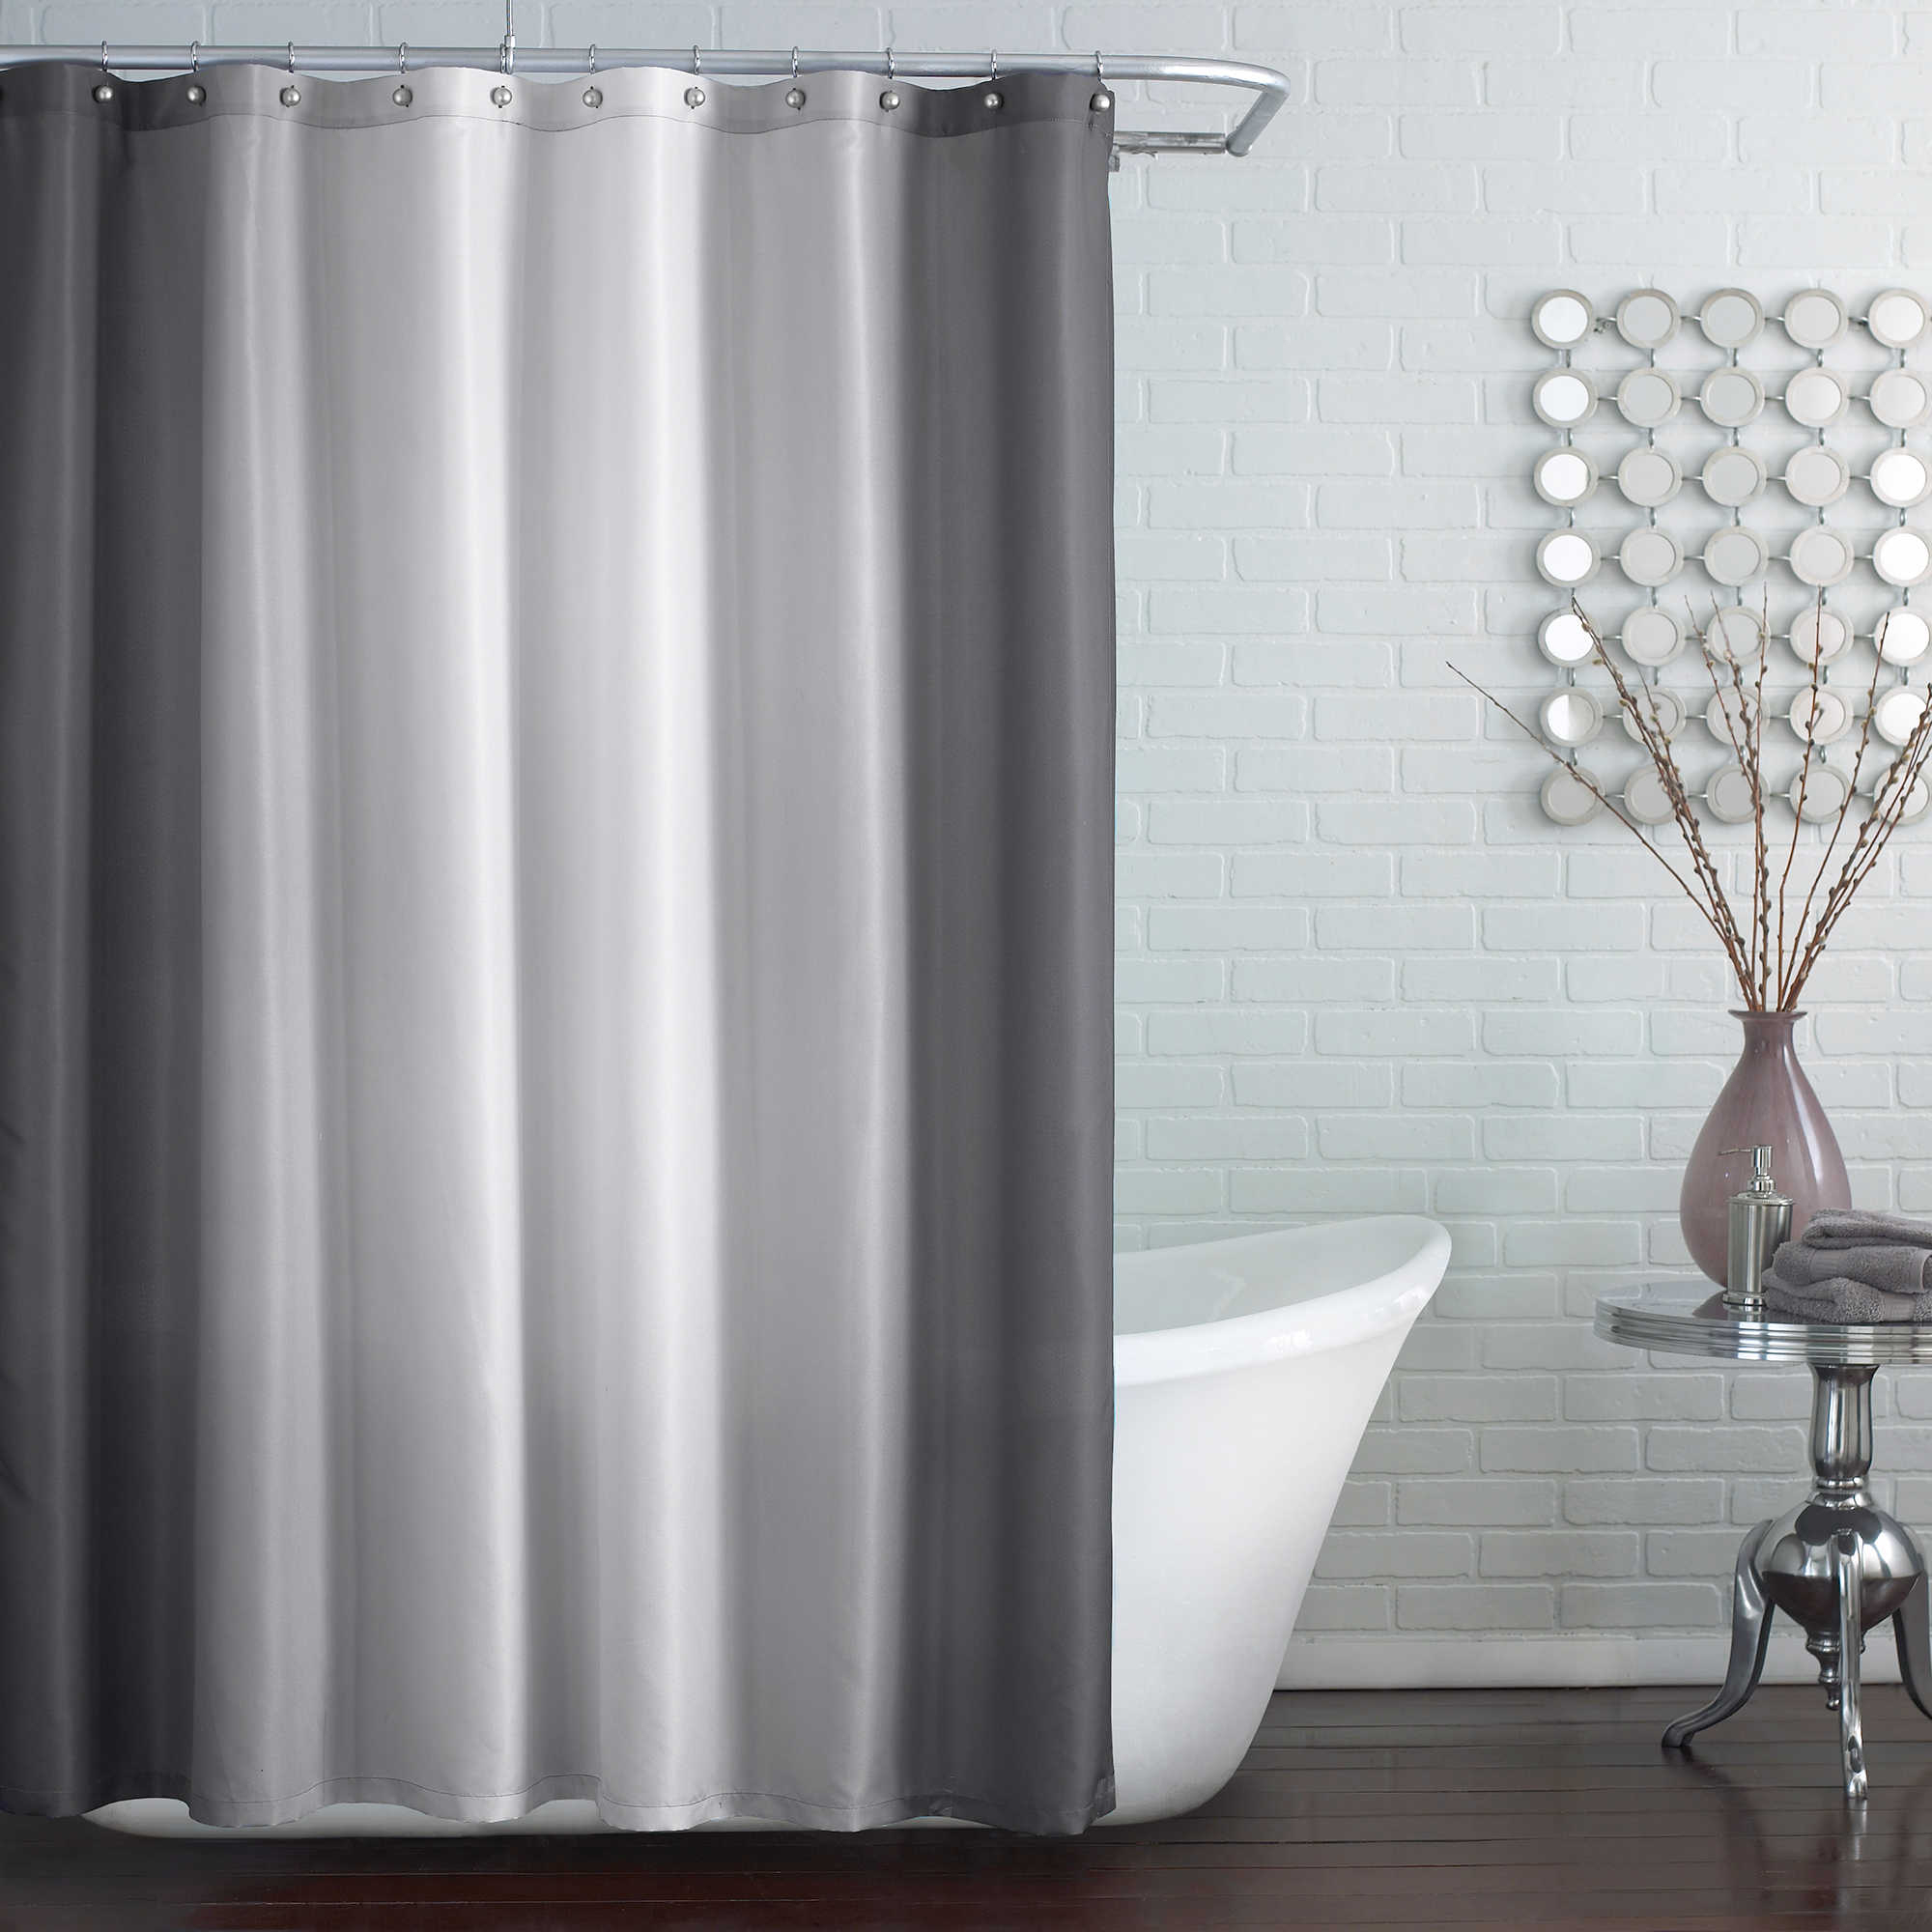 extra long white shower curtain liner